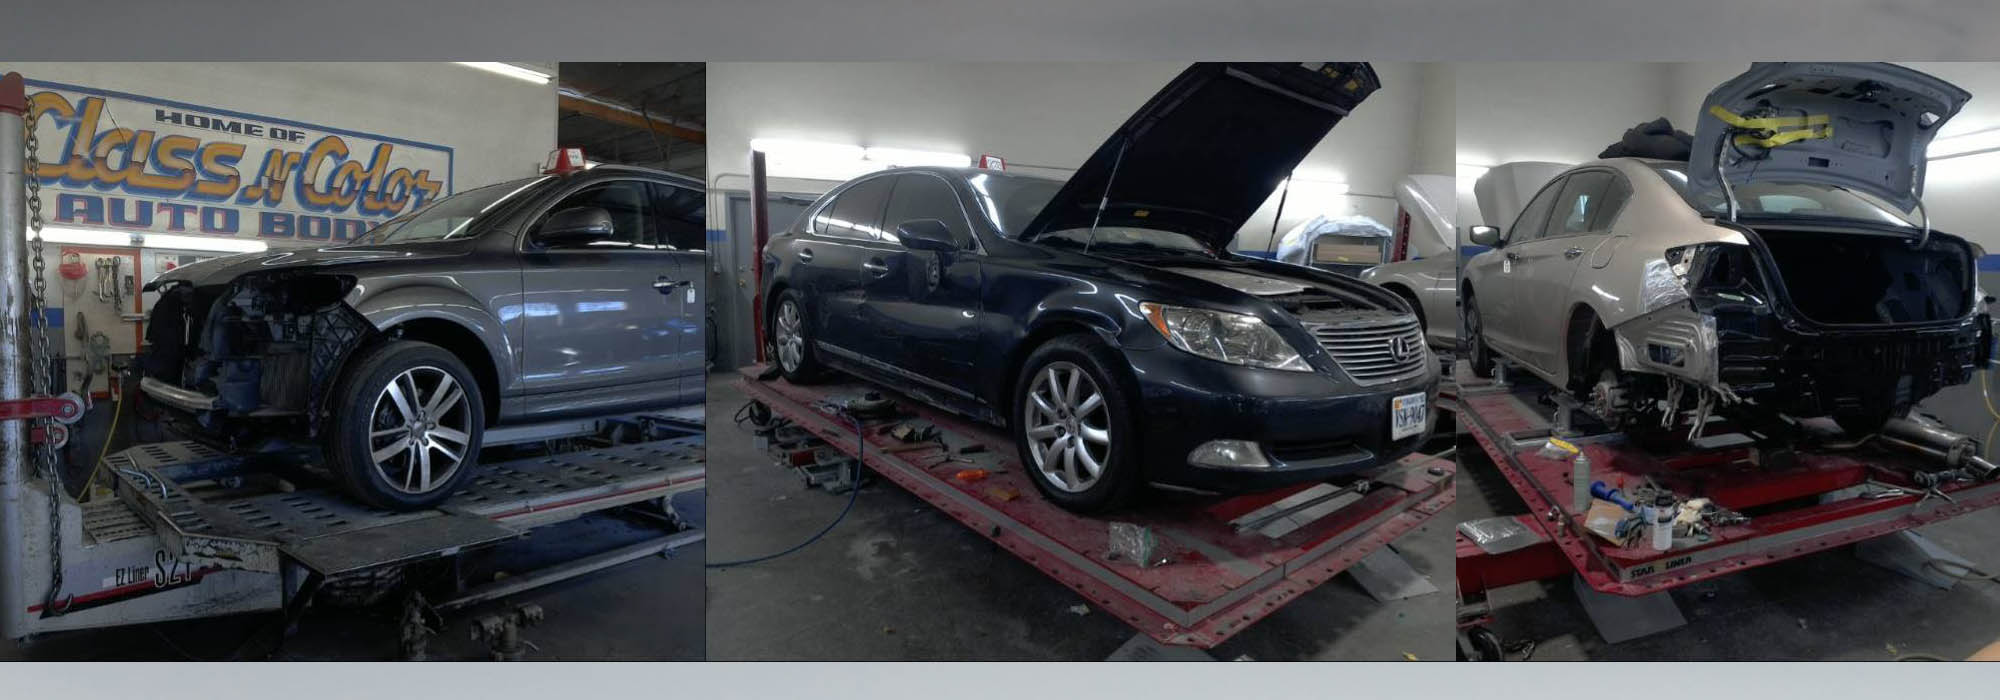 Class N Color Auto Collision - Quality Collision Car Repairs